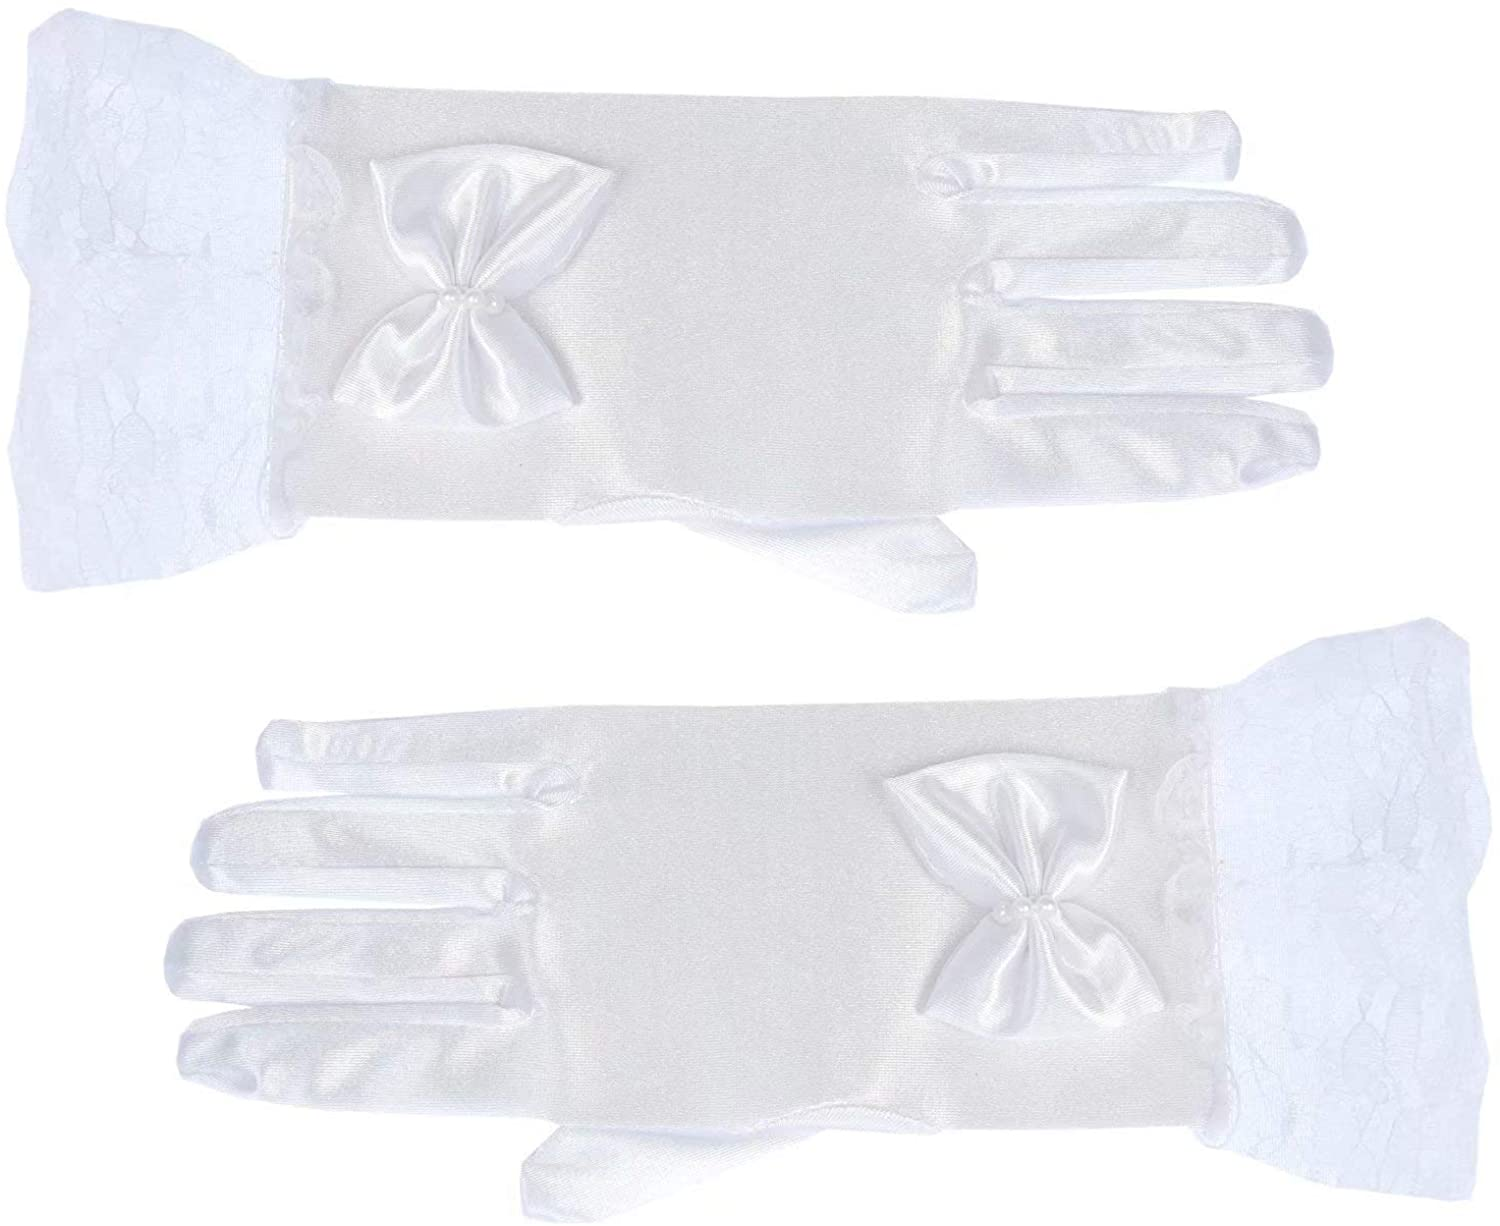 CC Jocelyn White First Holy Communion Gloves Flower Girls Fancy Stretch Silky Satin Formal Lace Gloves with Pearl Bowknot for Special Occasion Short Princess Accessories Gloves for Wedding Party